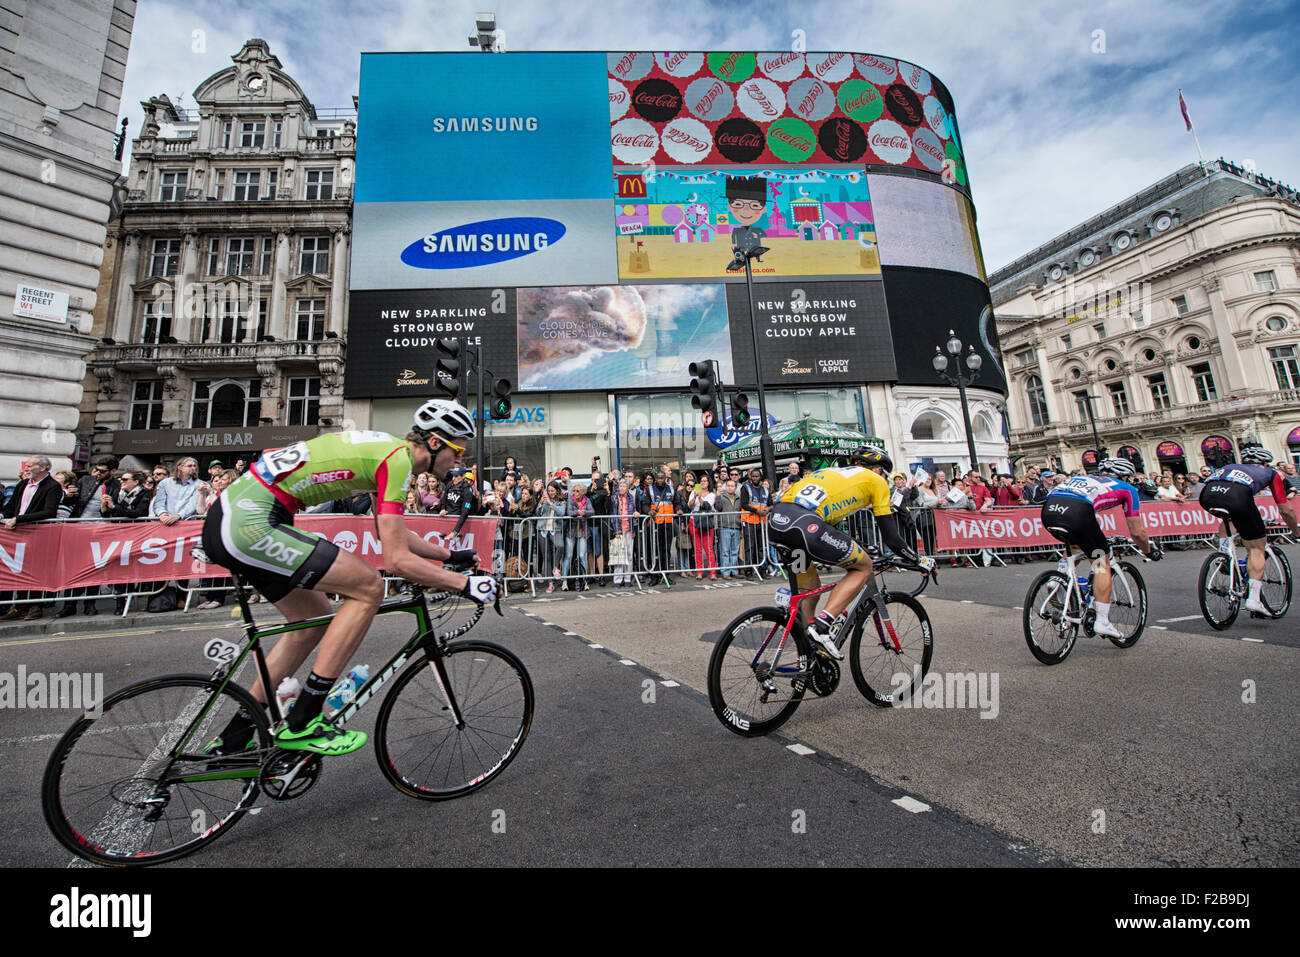 Cyclists pass advertising hoardings at Piccadilly Circus during stage 8 of the 2015 Aviva Tour of Britain - Stock Image